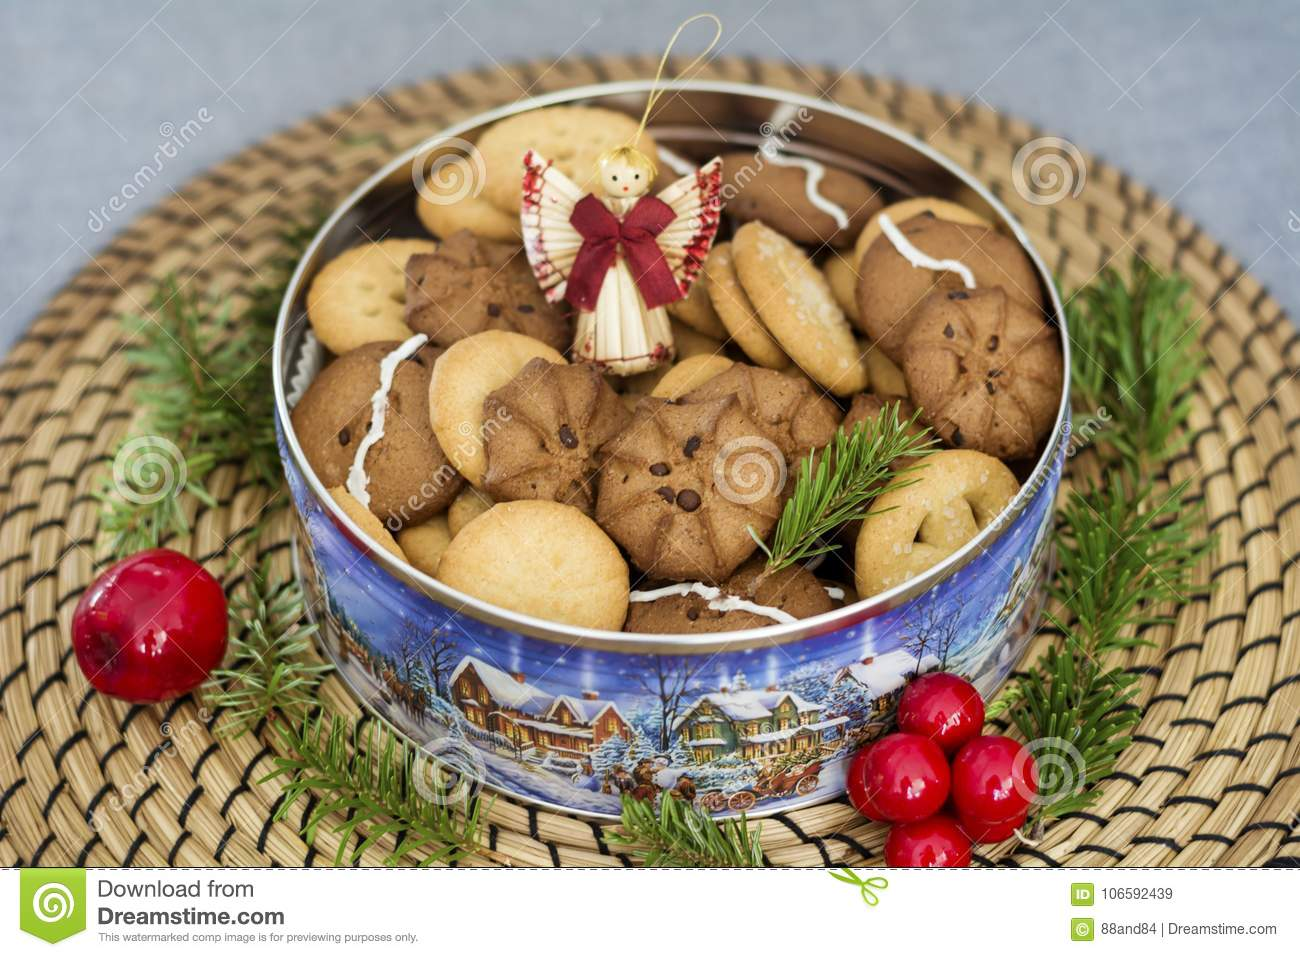 Assorted Cookies And Decorative Angel Stock Image Image Of Candies